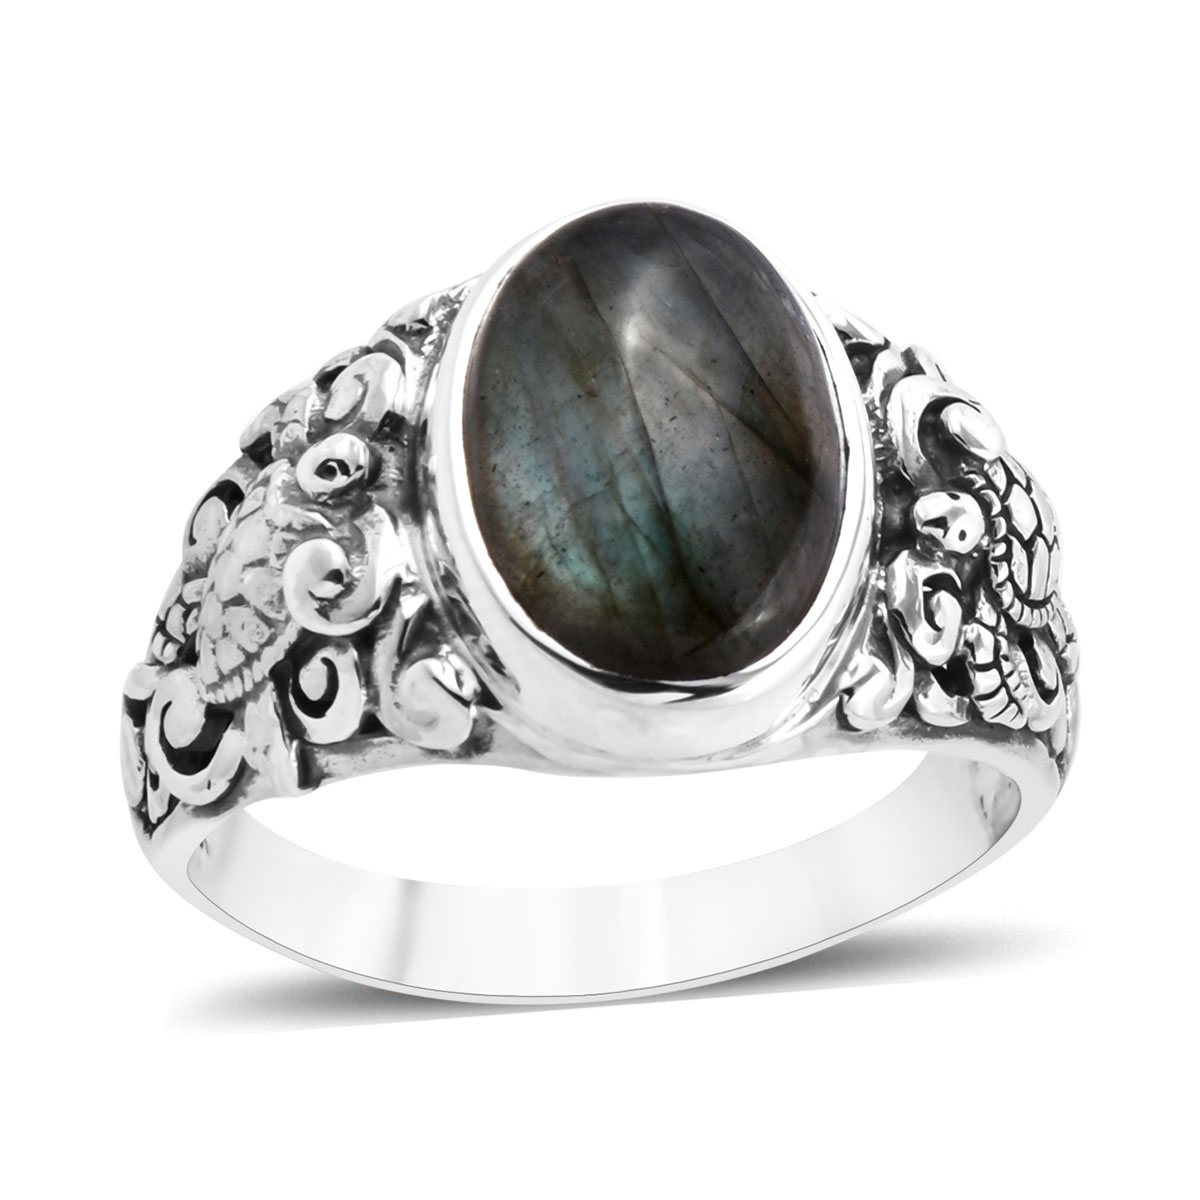 Bali Legacy Malagasy Labradorite Ring in Sterling Silver (Size 7.0) 7.13 ctw